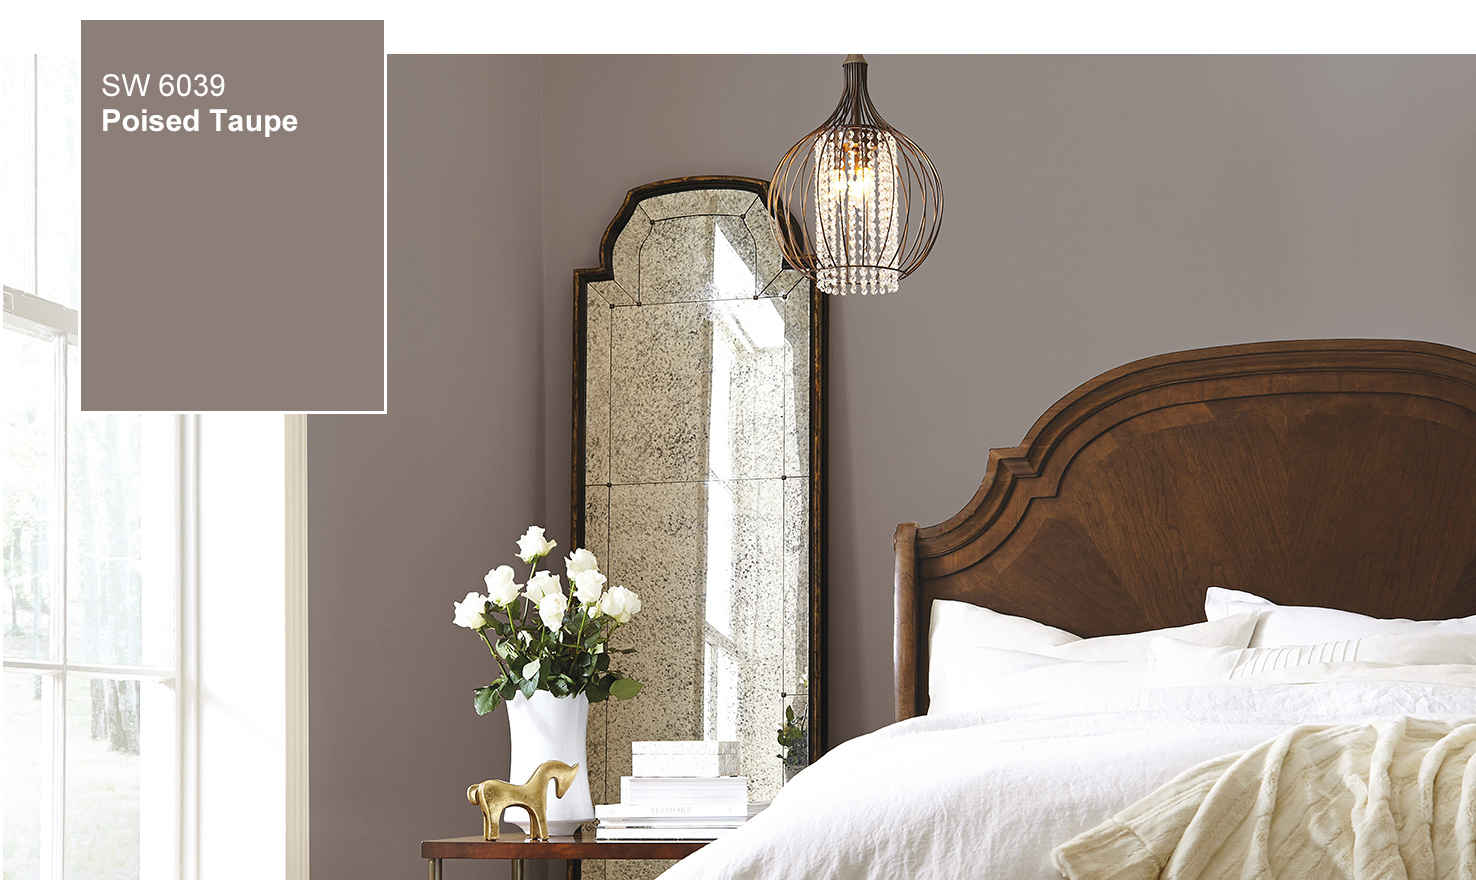 sherwin williams selects poised taupe as 2017 color of the year custom home magazine design. Black Bedroom Furniture Sets. Home Design Ideas